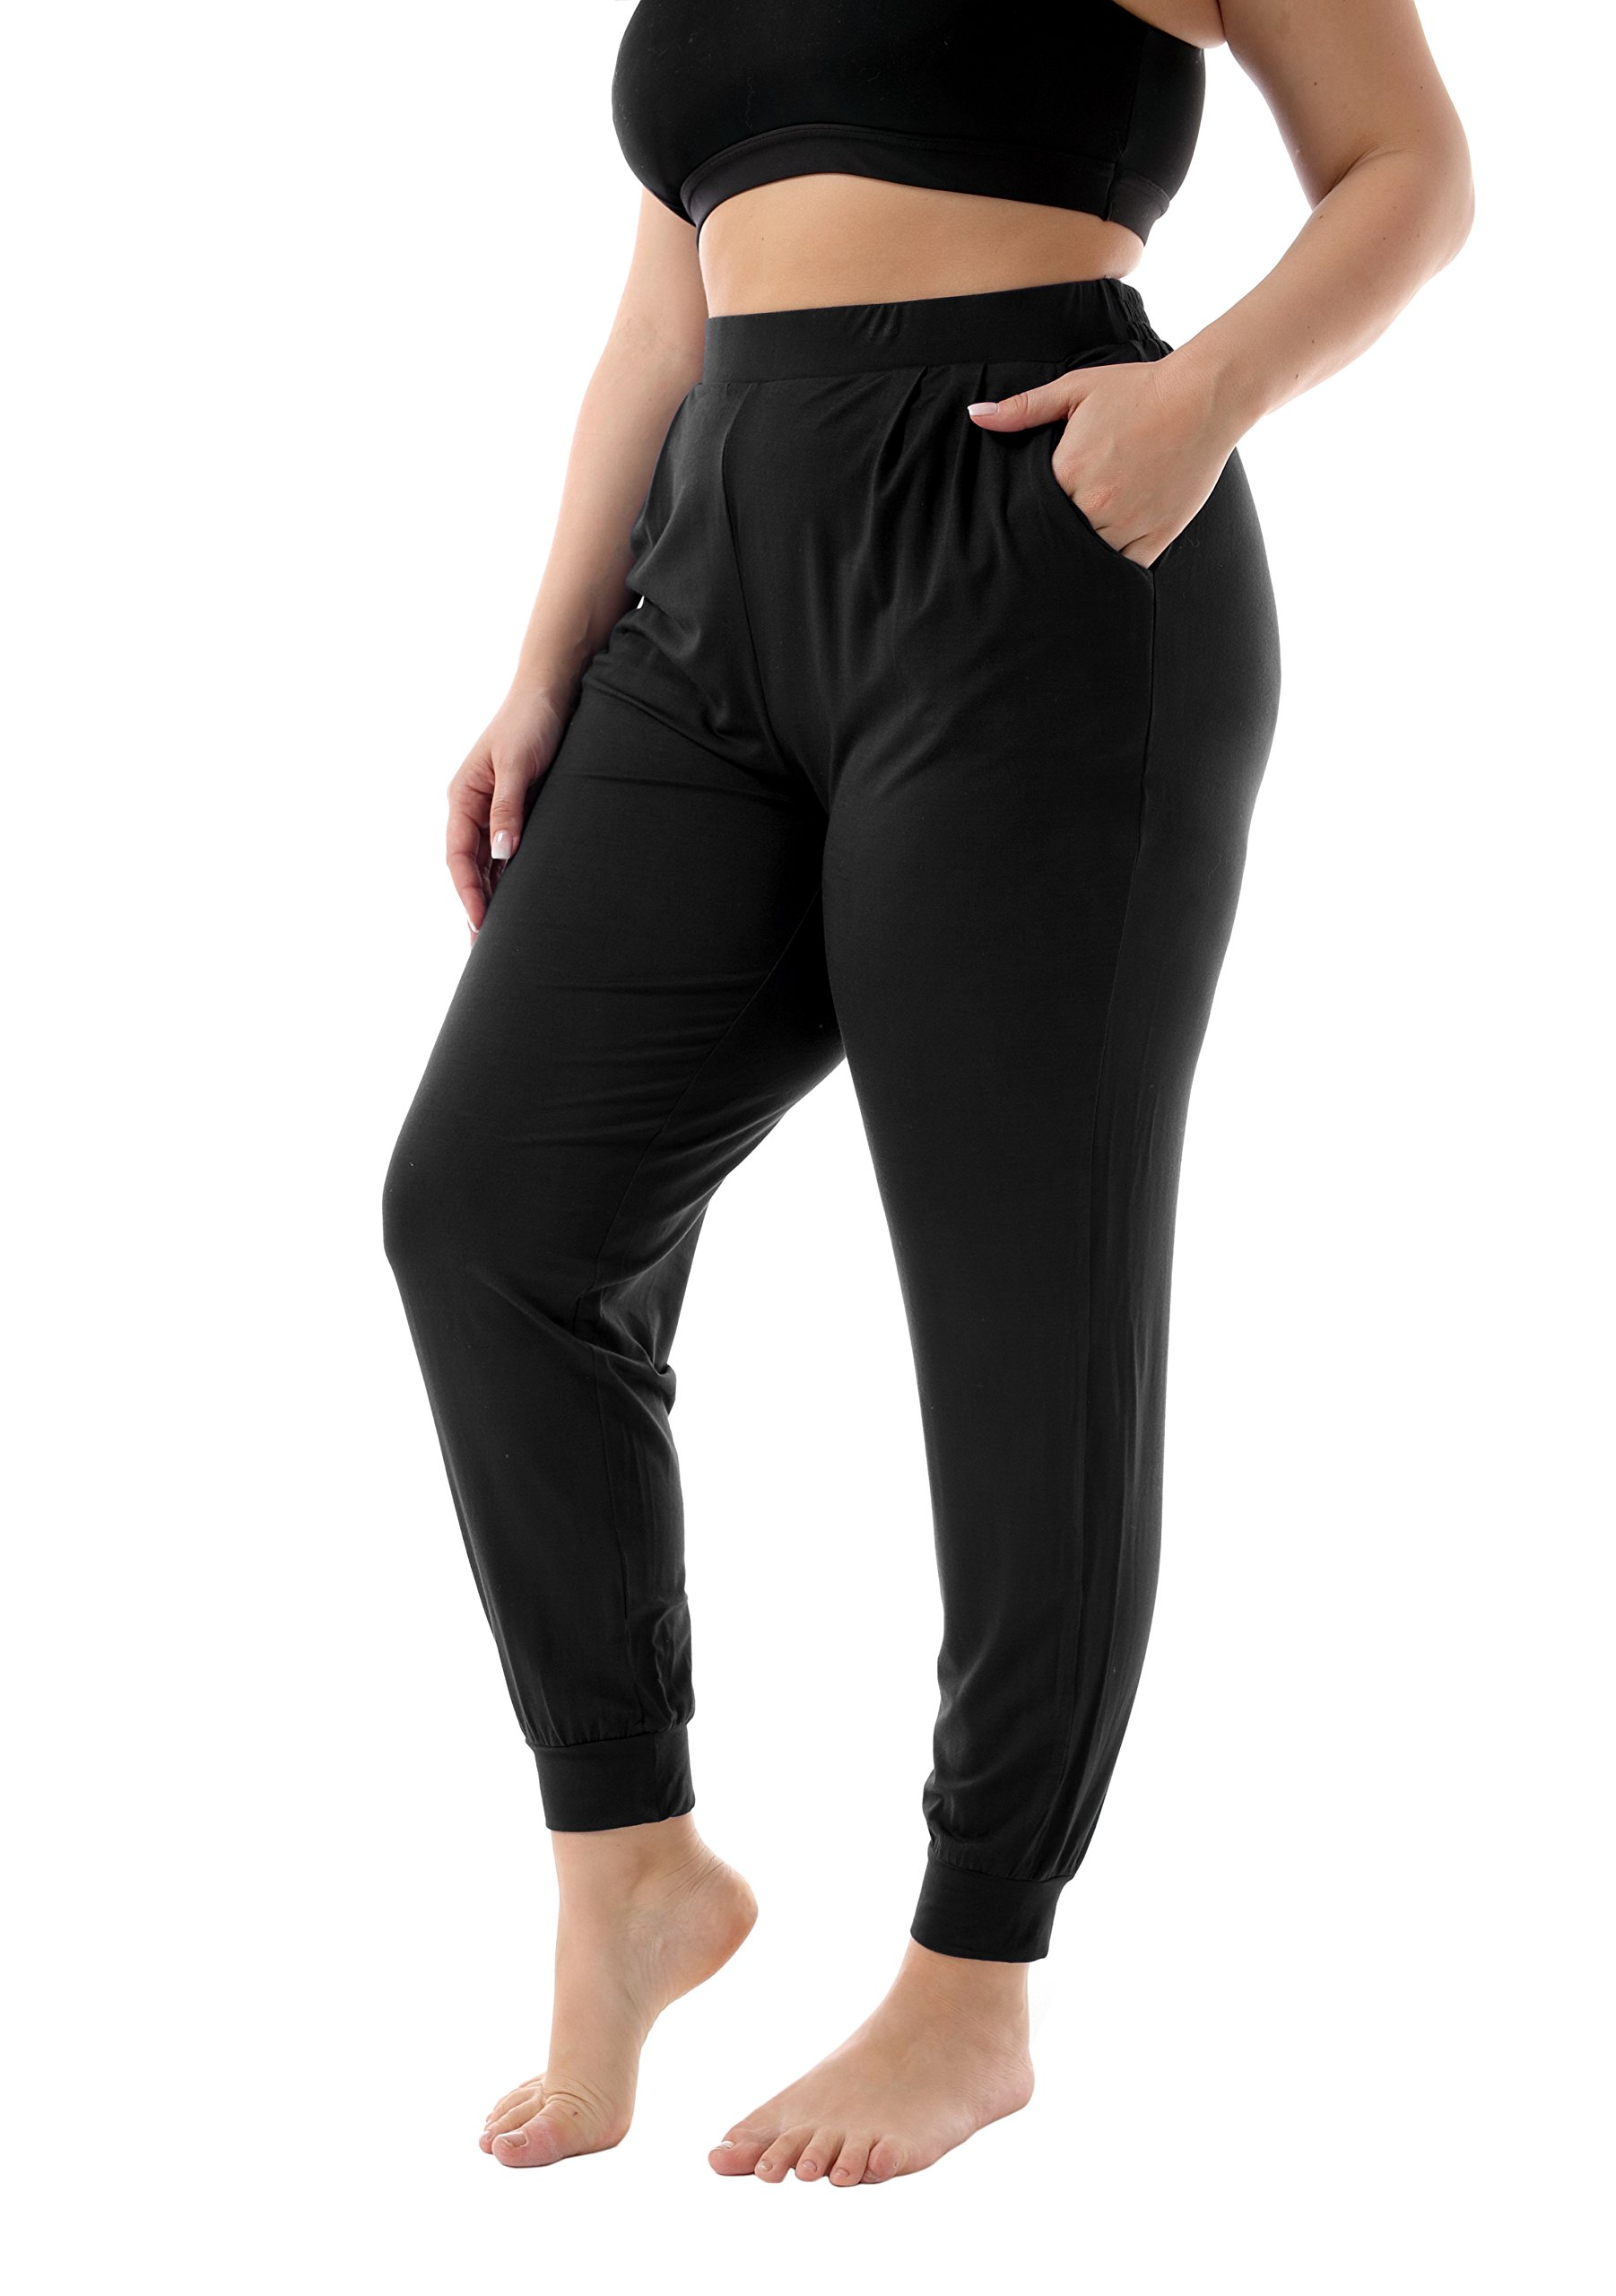 ZERDOCEAN Women's Plus Size Casual Stretchy Relaxed Lounge Pants Black 2X by ZERDOCEAN